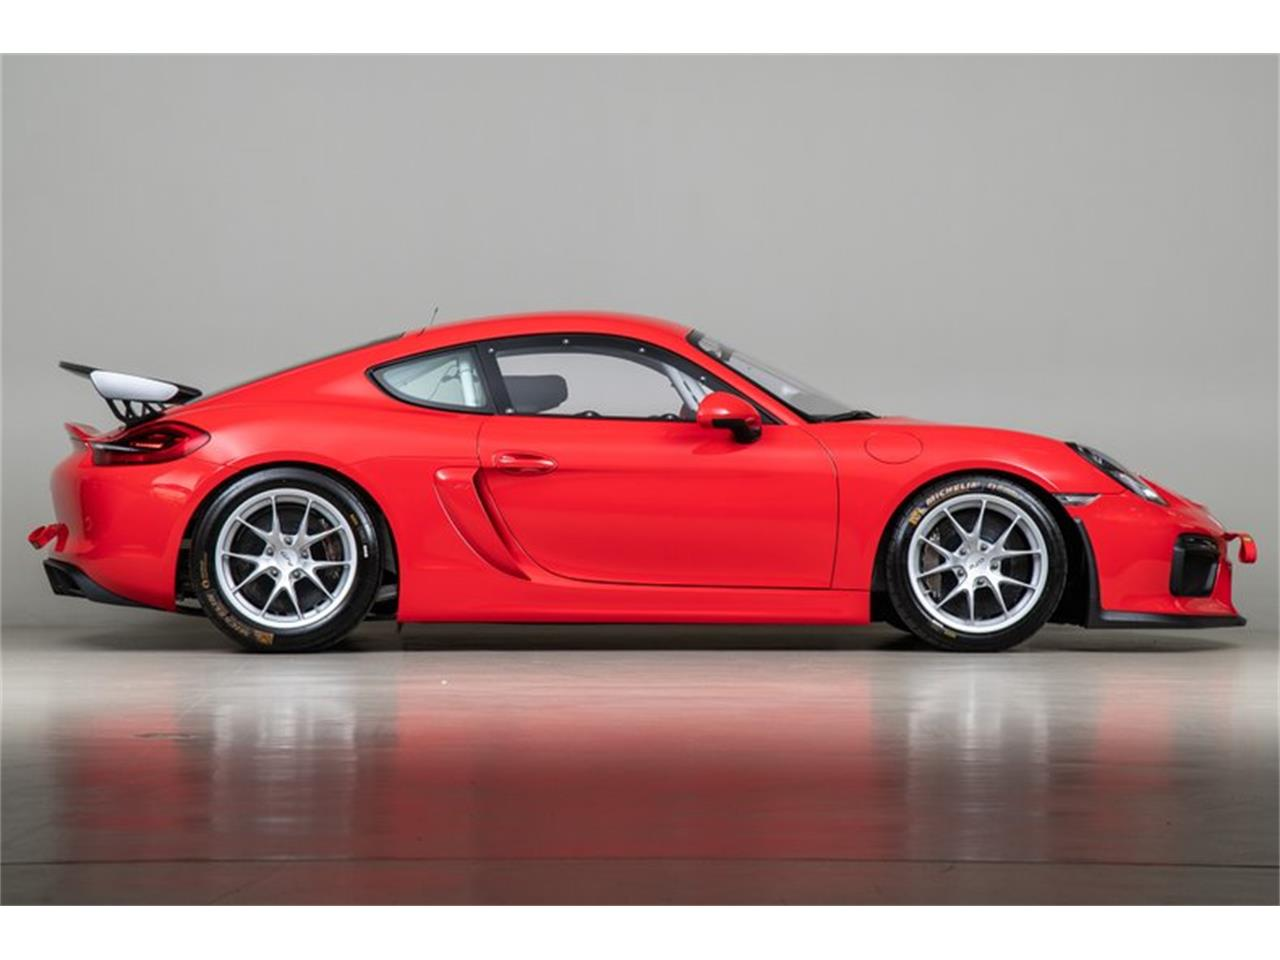 Large Picture of 2016 Cayman located in California Auction Vehicle Offered by Canepa - PX7K